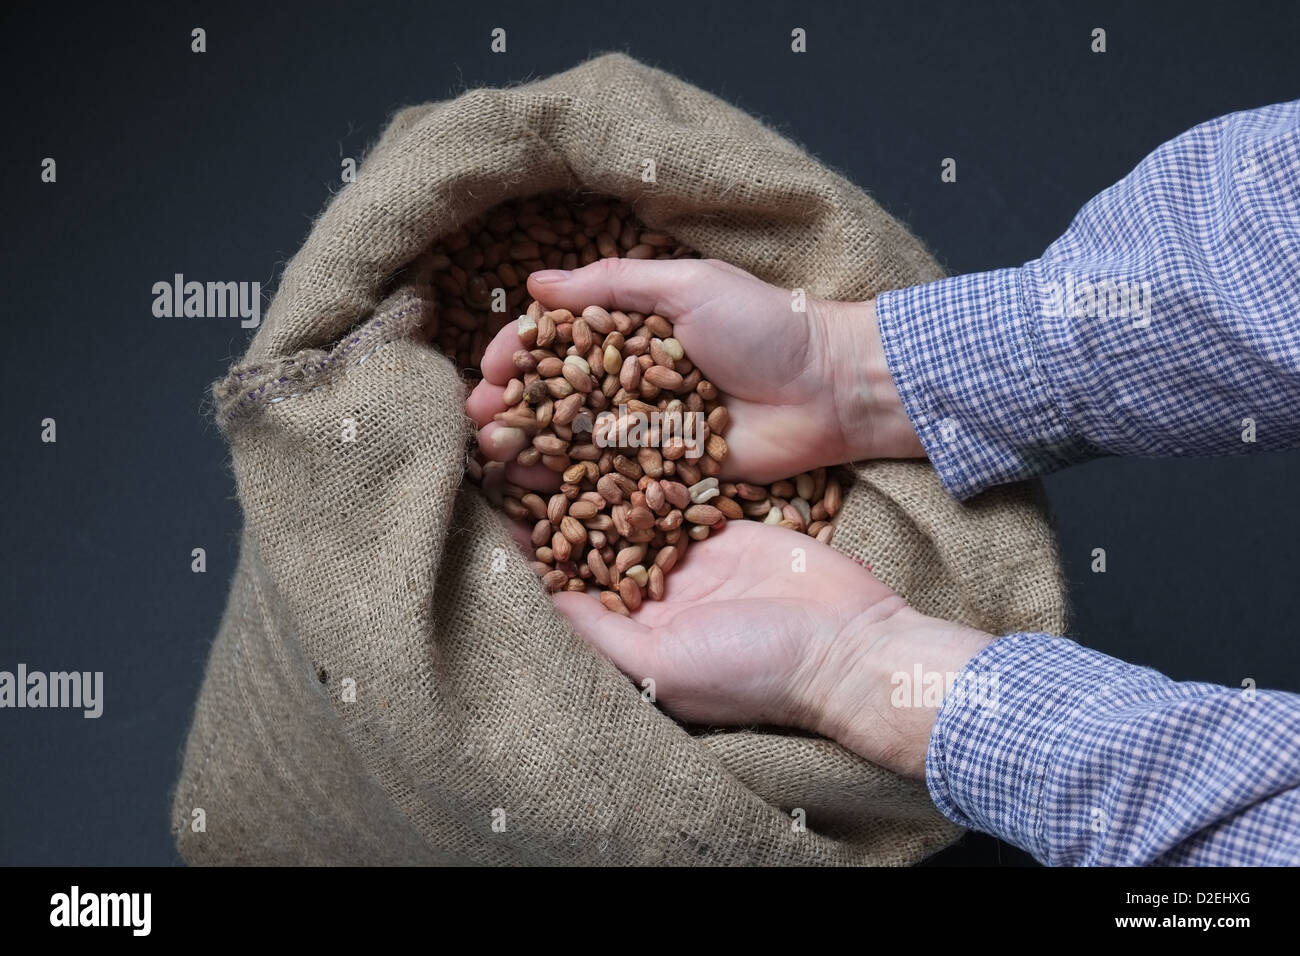 A man's hands hold peanuts in a hessian sack - Stock Image